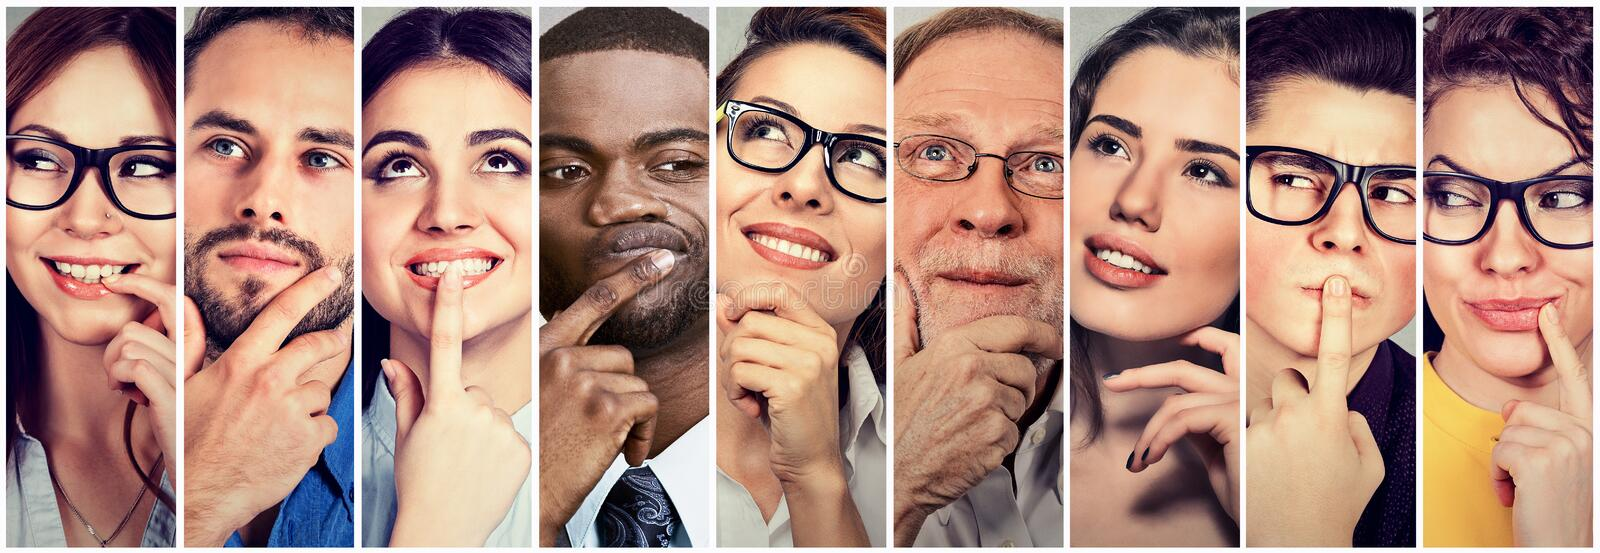 Multiethnic group of thoughtful men women. People`s thoughts. Multiethnic group of thoughtful men and women. People`s thoughts concept royalty free stock photos